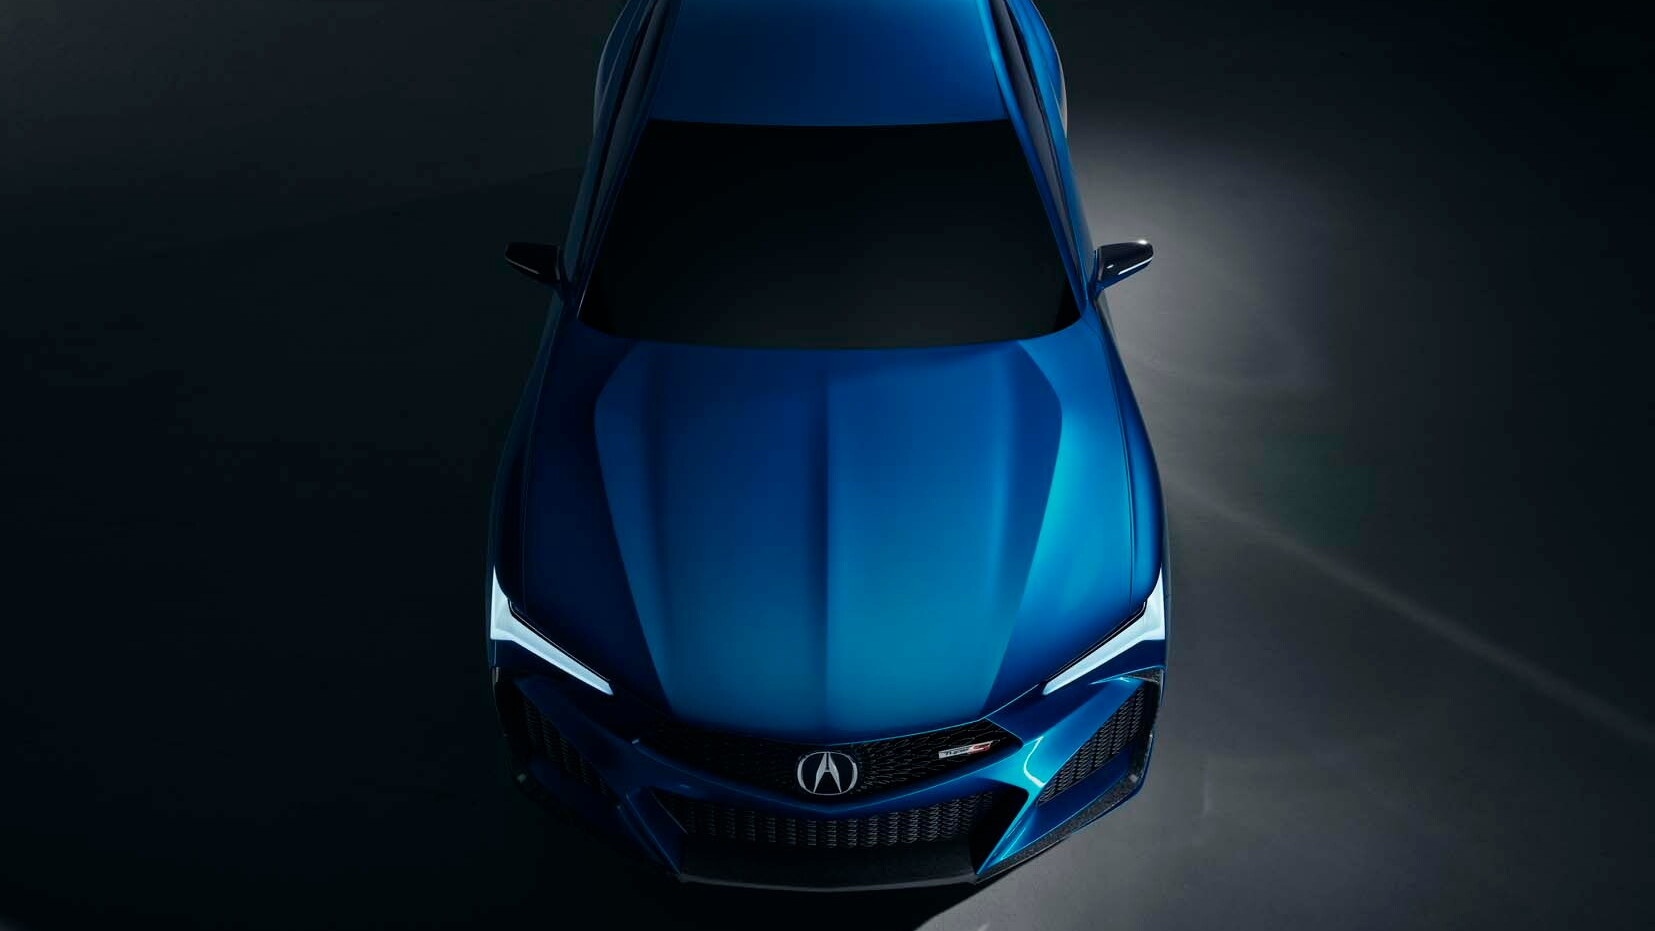 Acura Type S Concept to Debut in Monterey